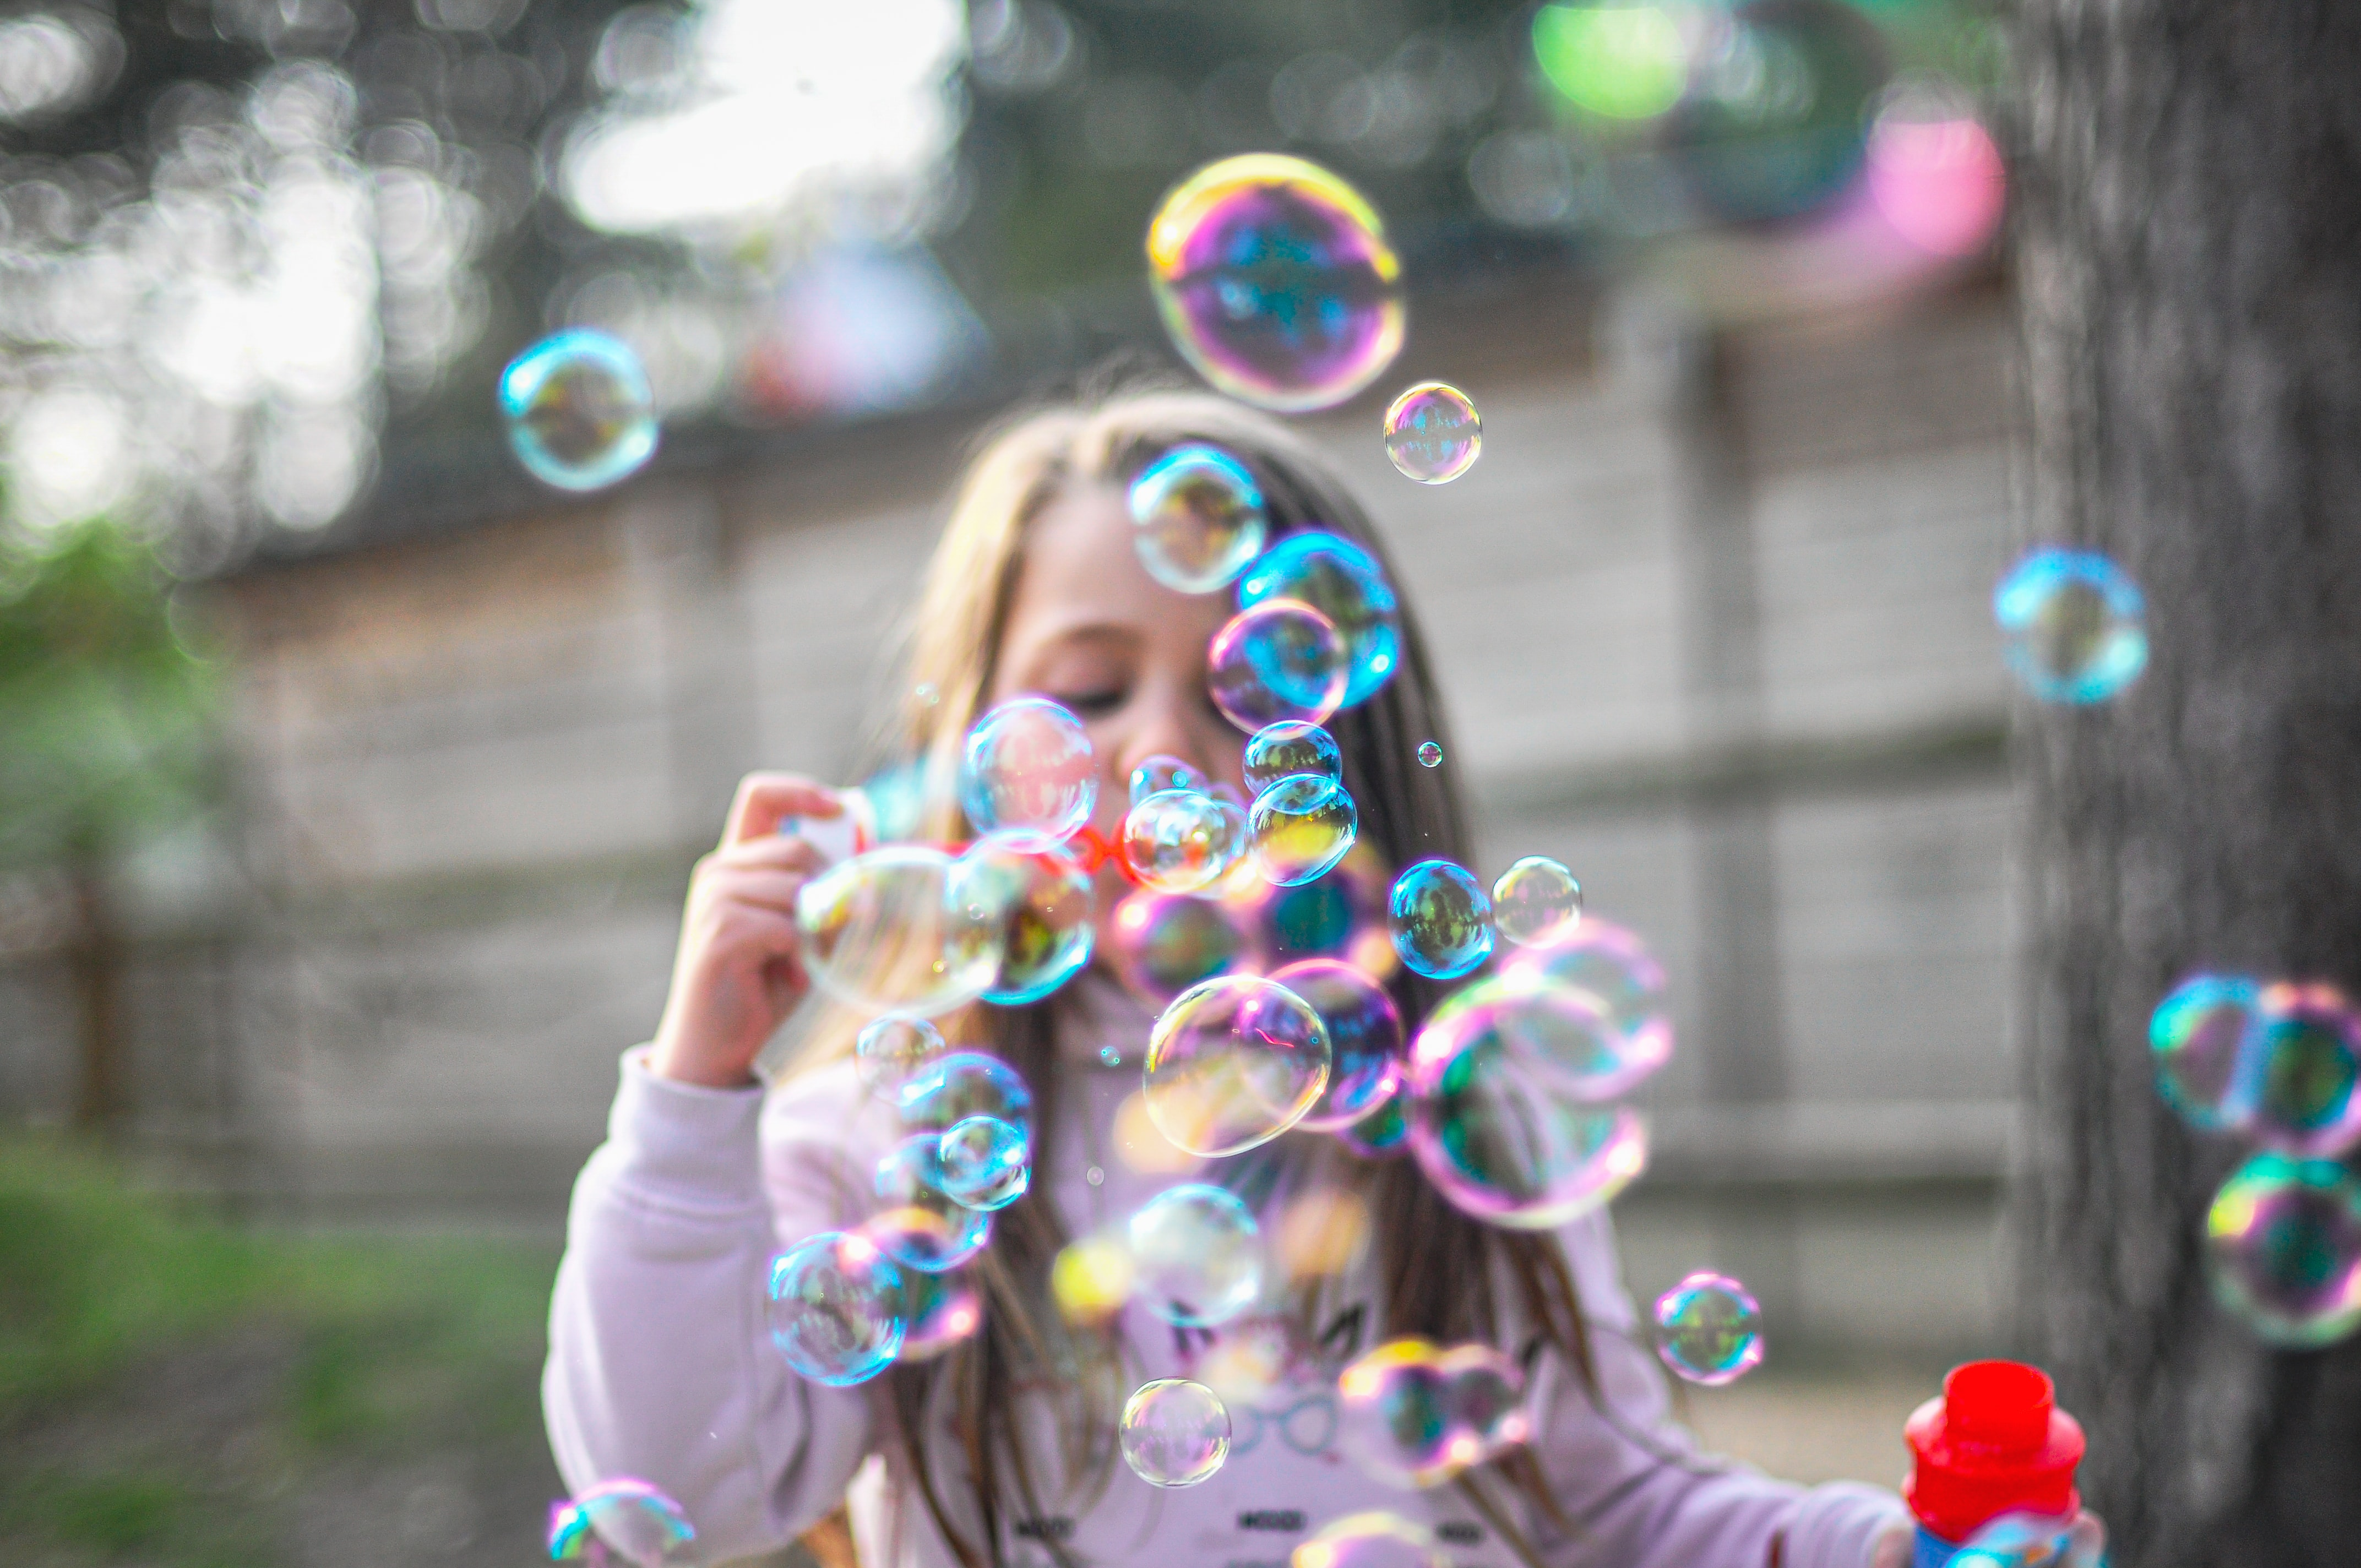 Child standing outside blowing bubbles